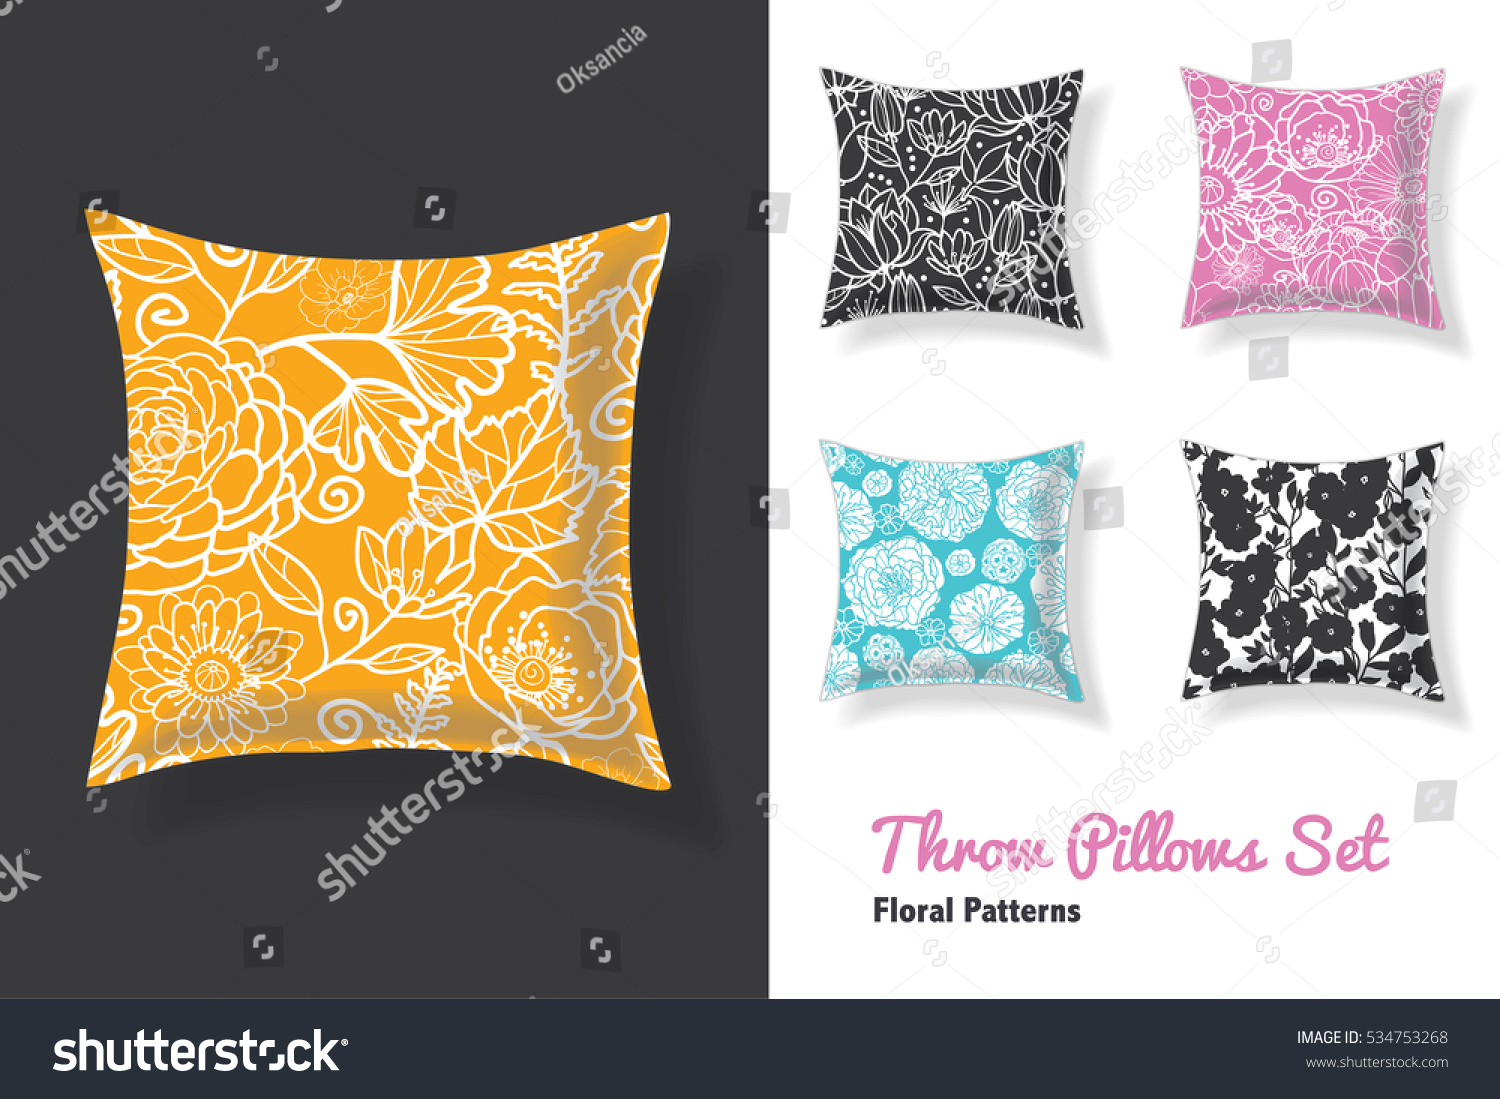 set throw pillows matching unique floral stock vector   - set of throw pillows in matching unique floral seamless patterns squareshape editable vector